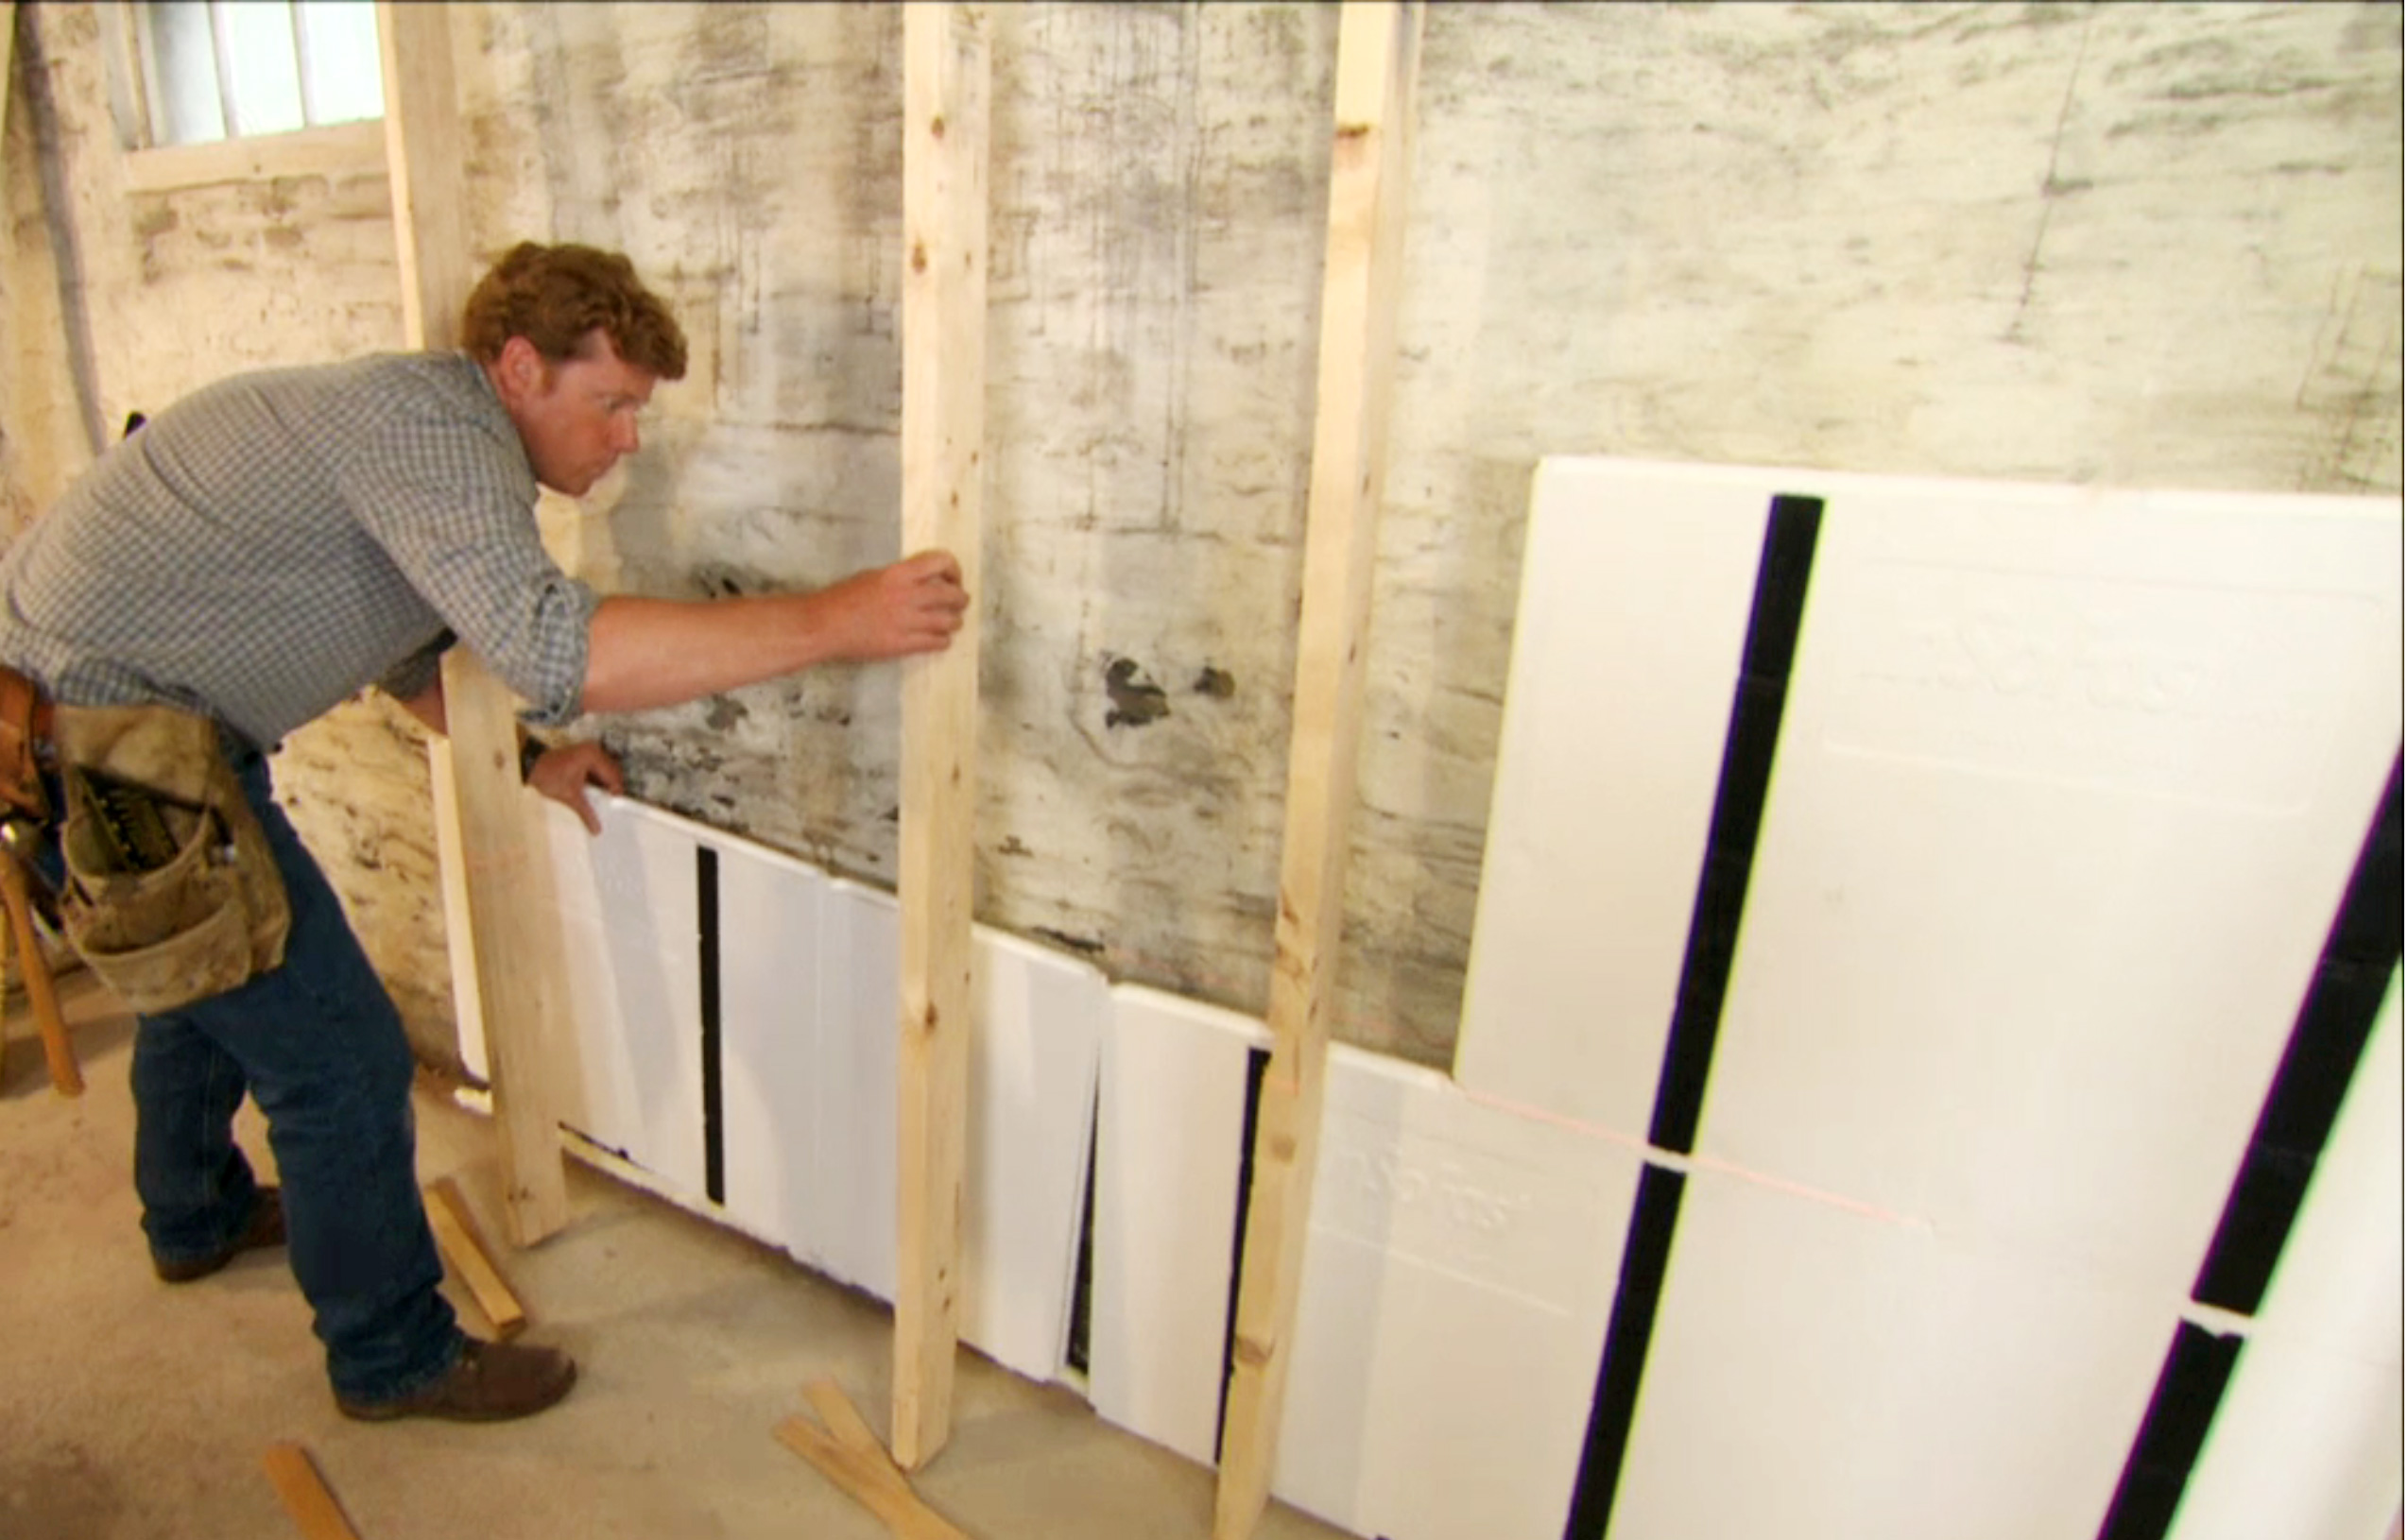 Kevin O'Connor lends a hand installing InSoFast foam panels at the Cambridge 2012 project